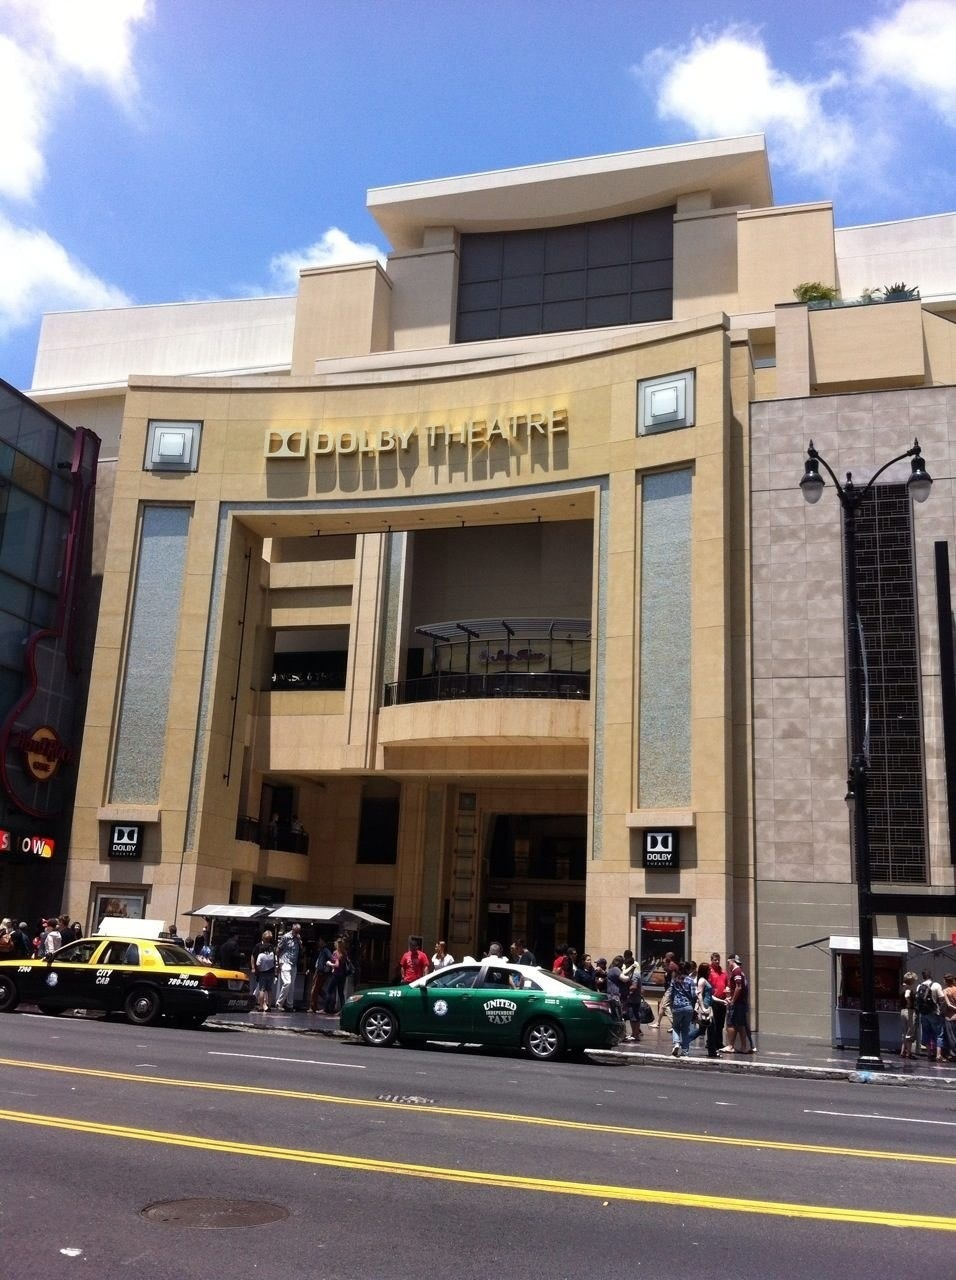 Here's the Dolby Theatre, formerly known as the Kodak Theatre, which hosted the Academy Awards this February.